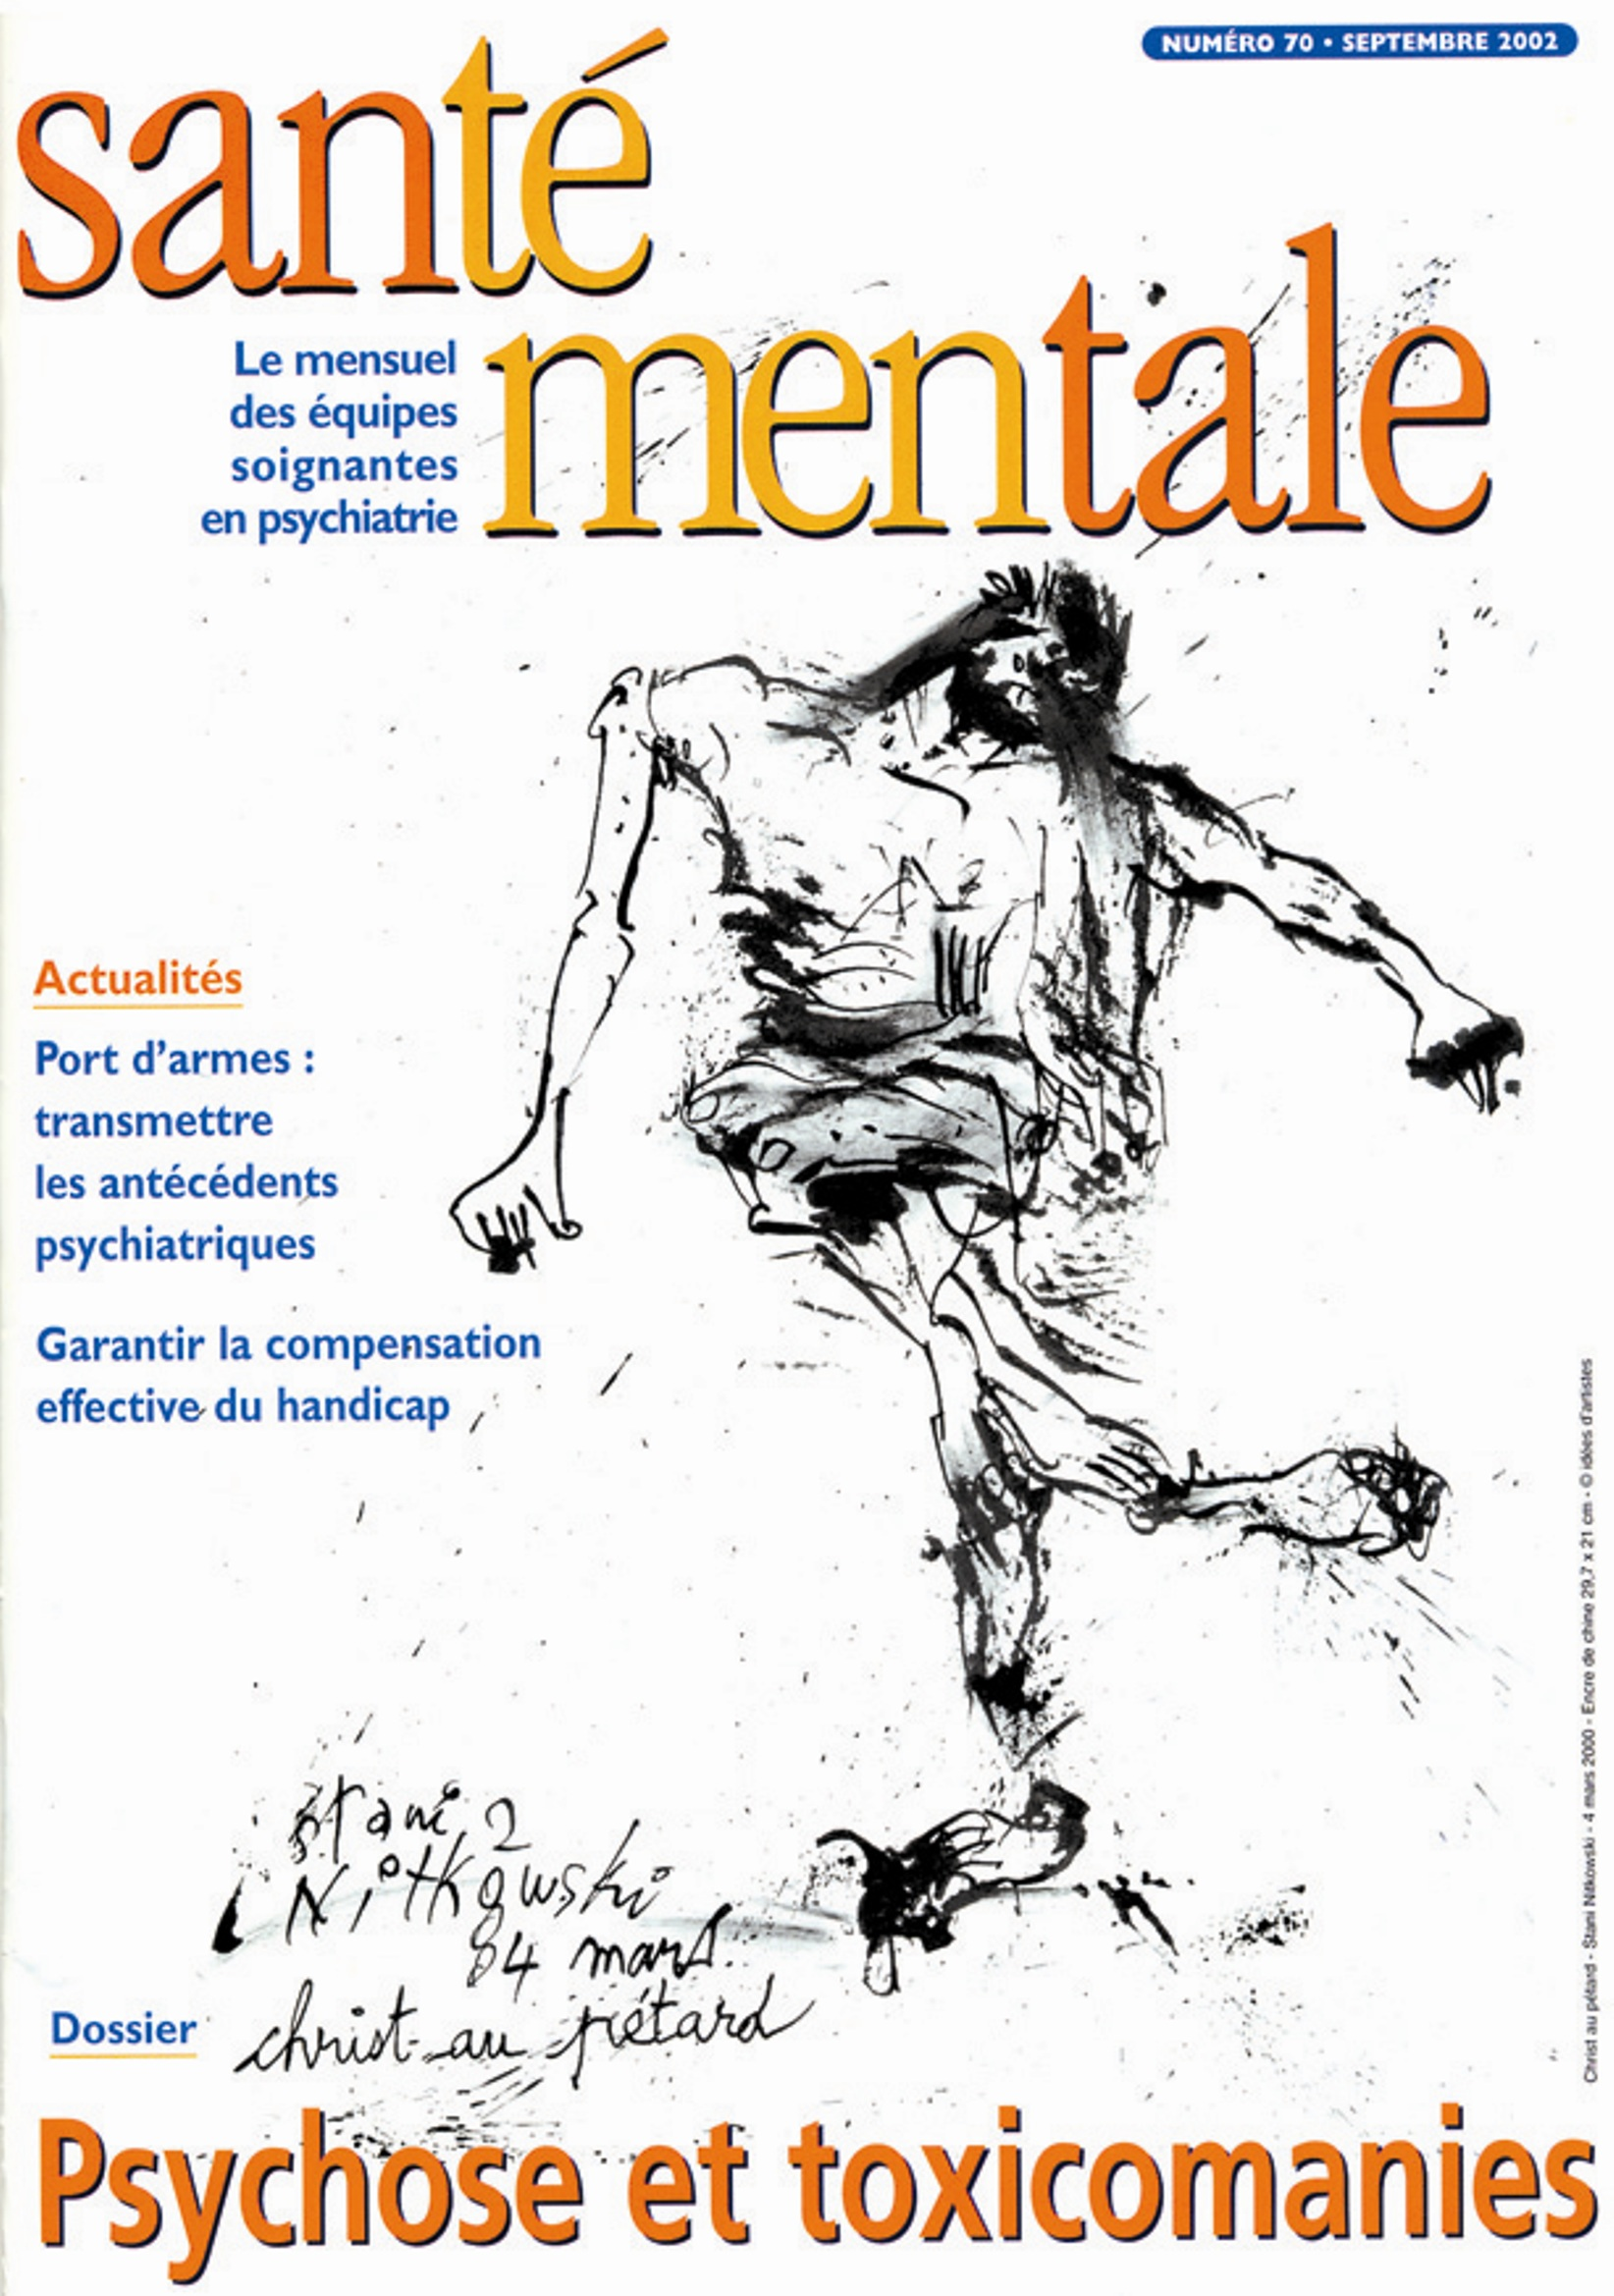 Couverture N°70 septembre 2002